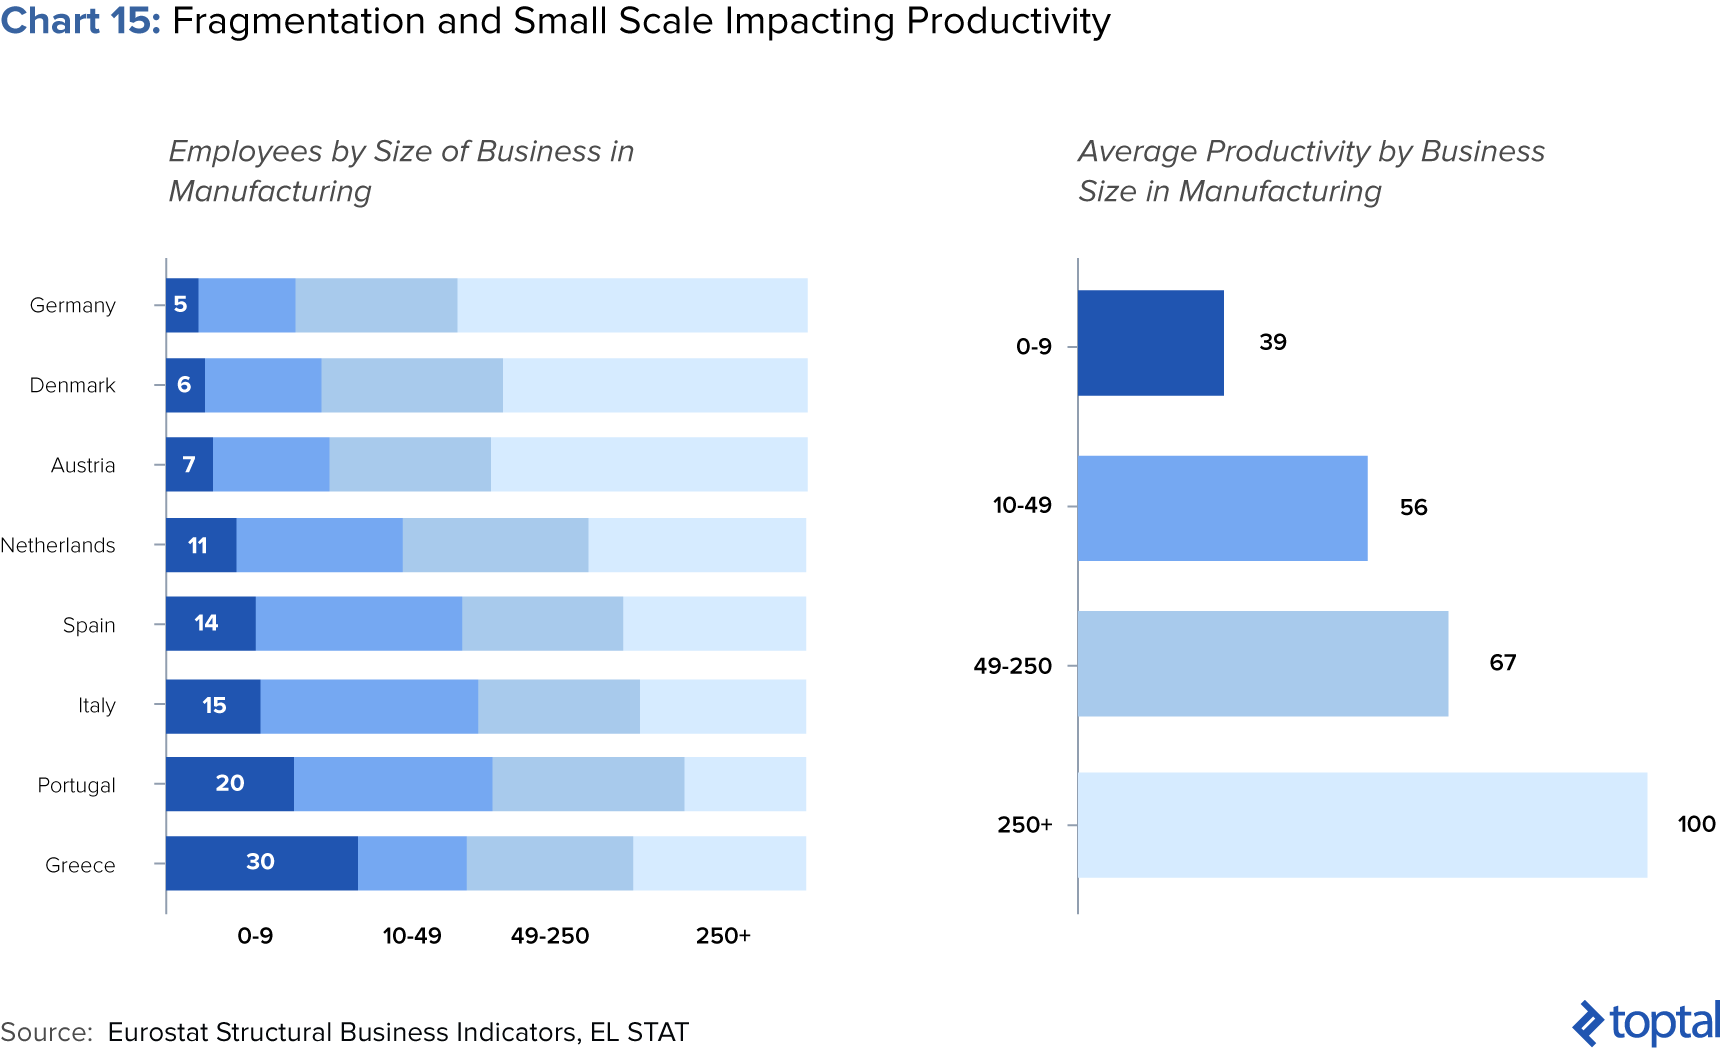 Chart 15: Fragmentation and Small Scale Impacting Productivity